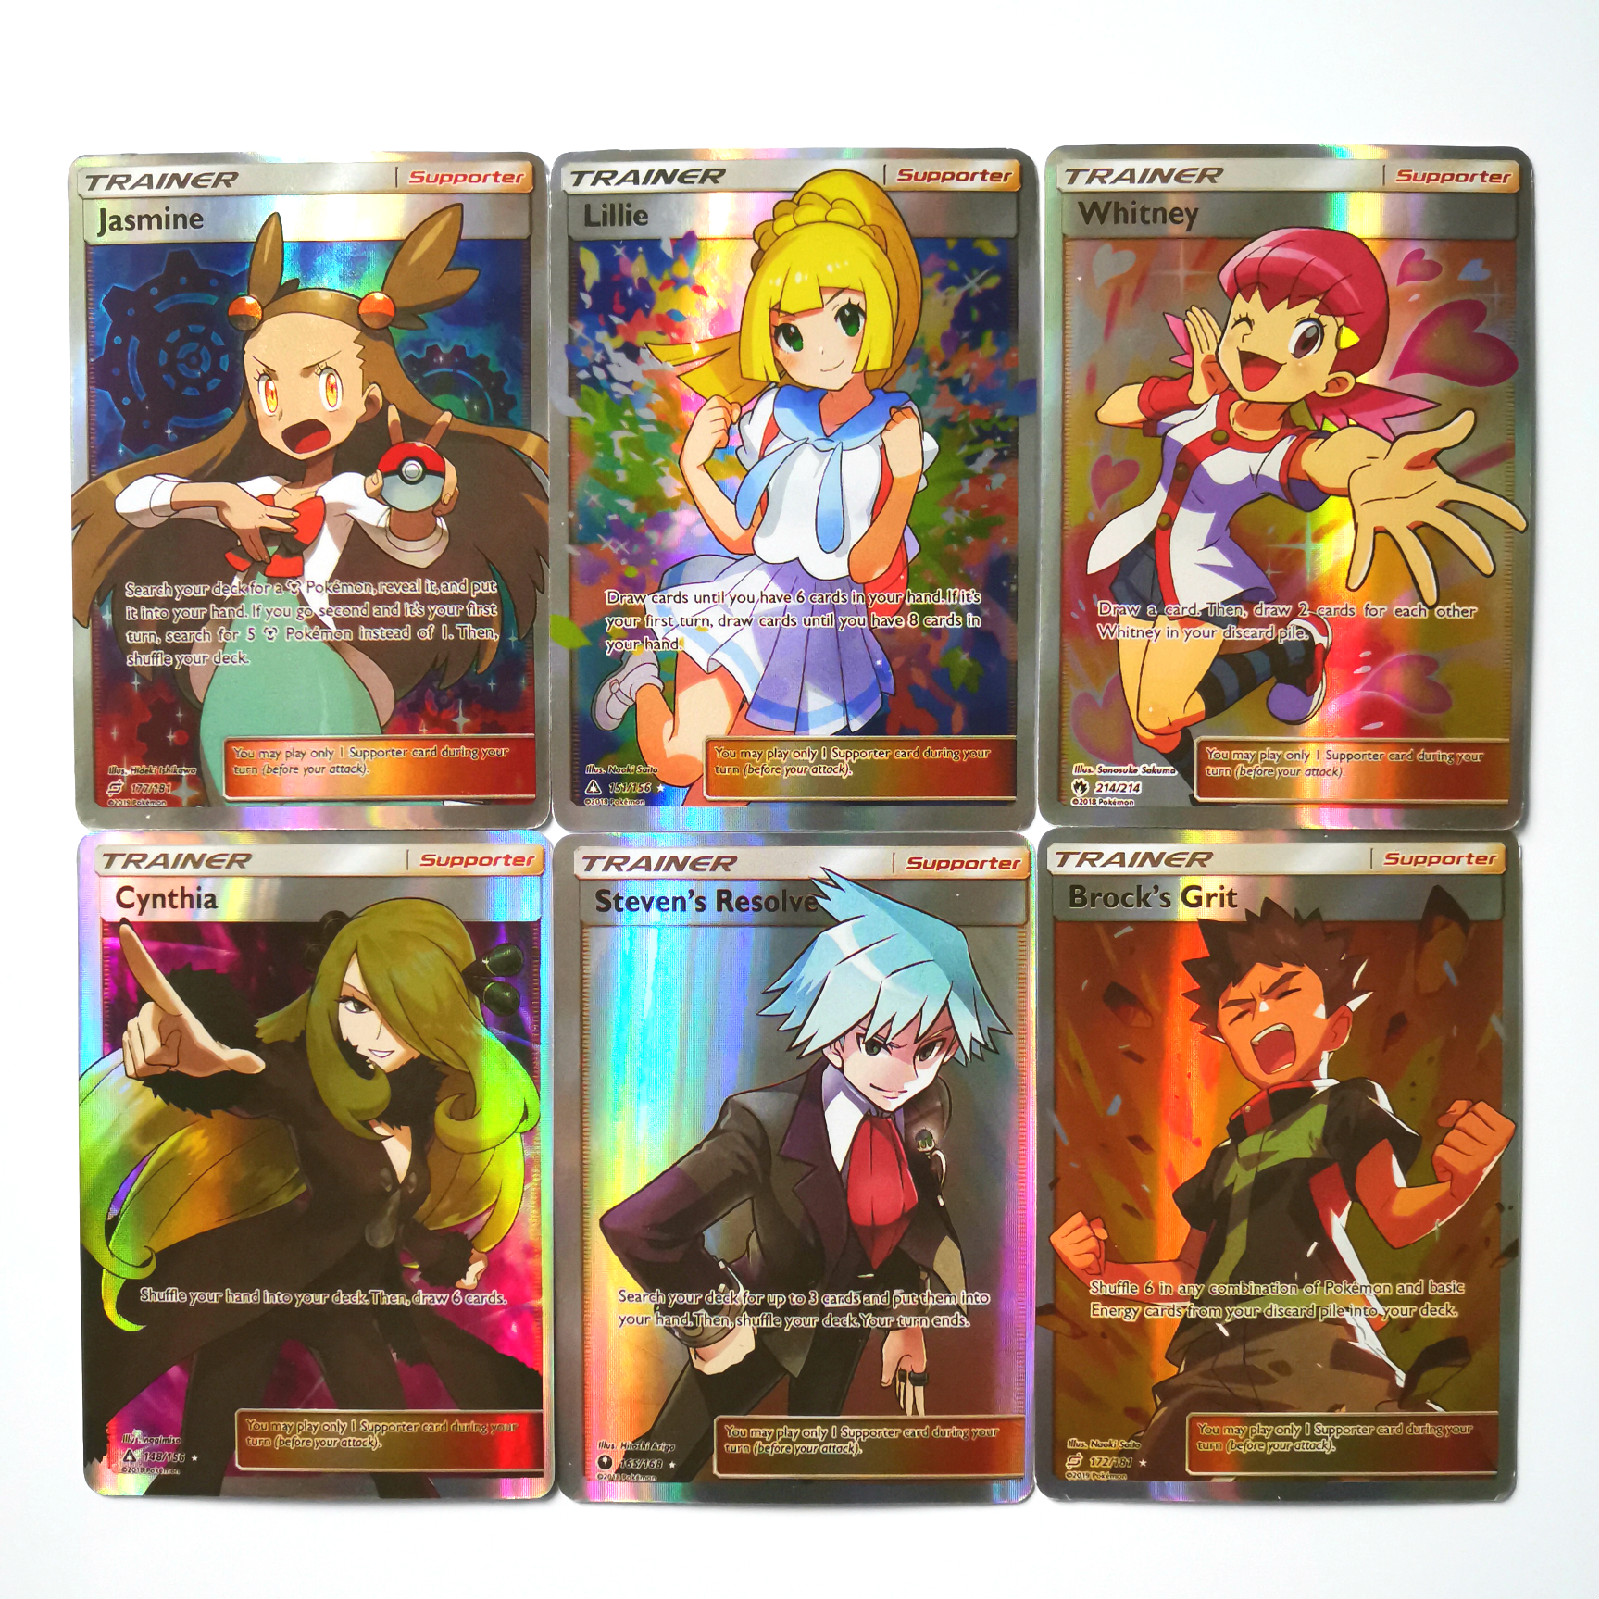 TAKARA TOMY 100pcs/set Pokemon Trainer Toys Hobbies Hobby Collectibles Game Collection Anime Cards for Children Christmas Gift